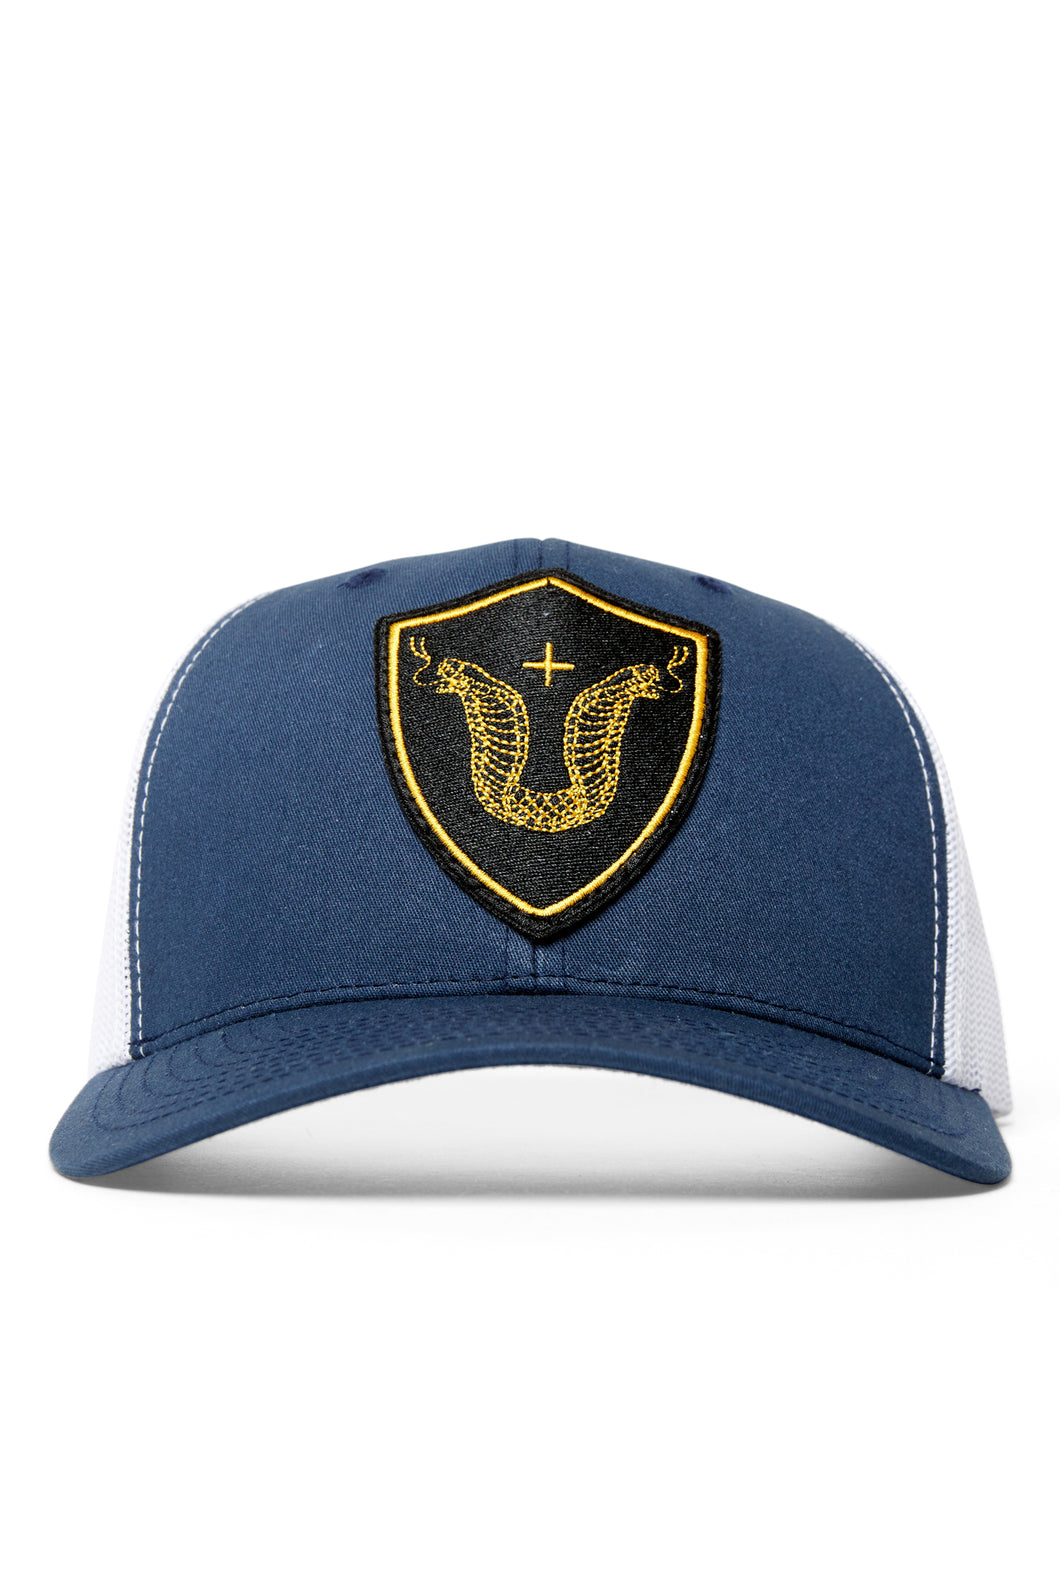 Snake Patch Trucker Hat